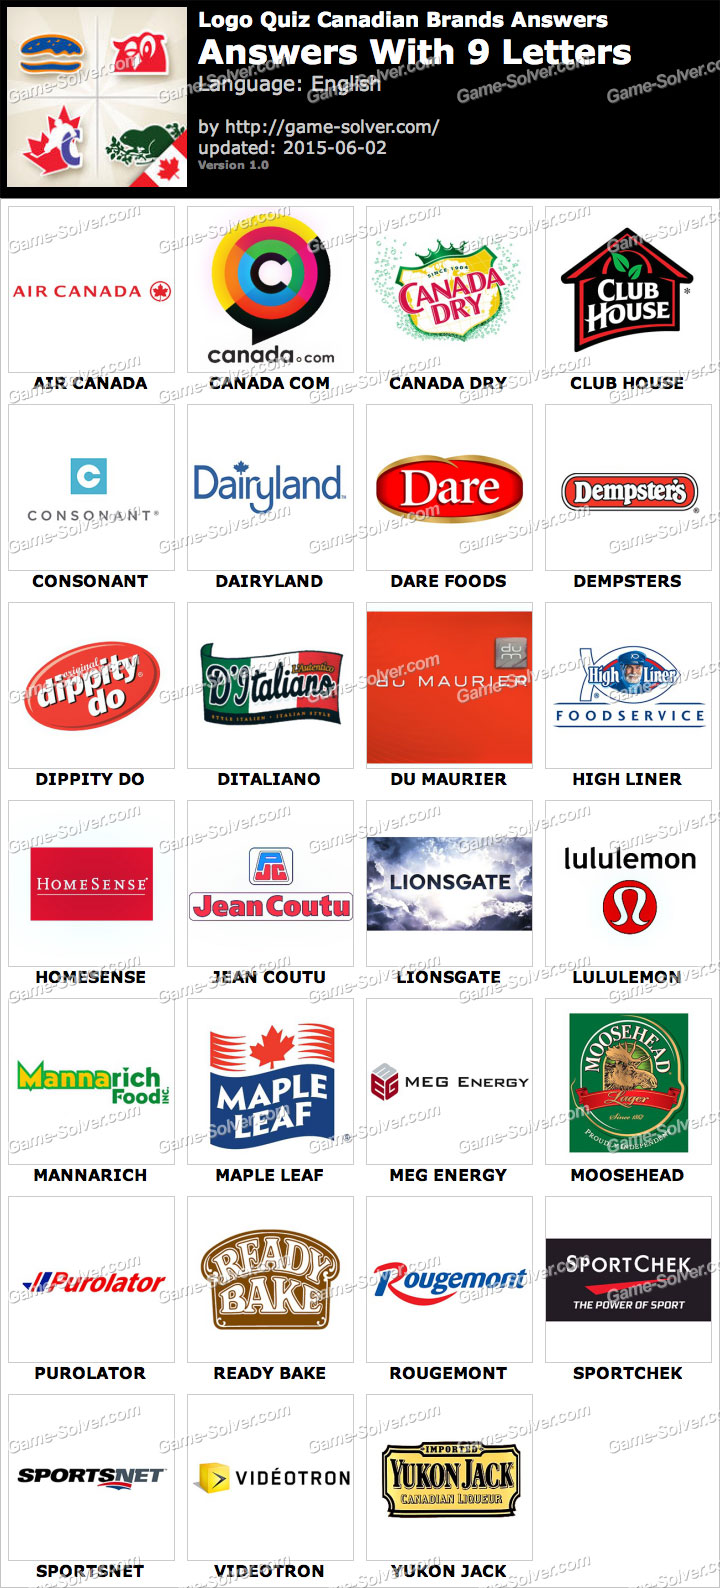 Logo Quiz Canadian Brands with 9 Letters